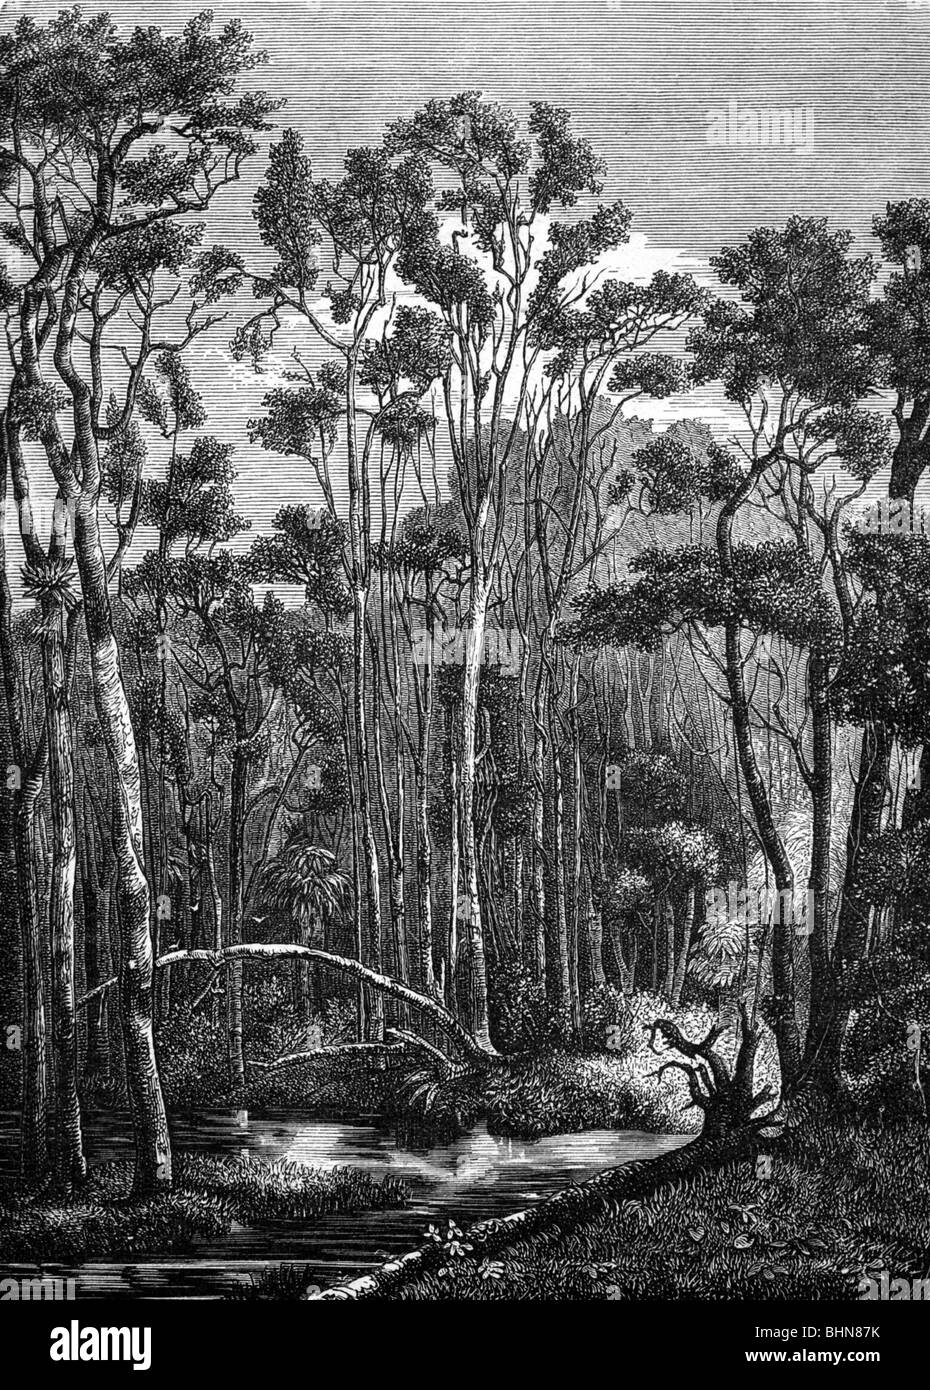 geography / travel, Australia, landscape, forest, eucalyptus forest, wood engraving, 19th century, historic, historical, Stock Photo